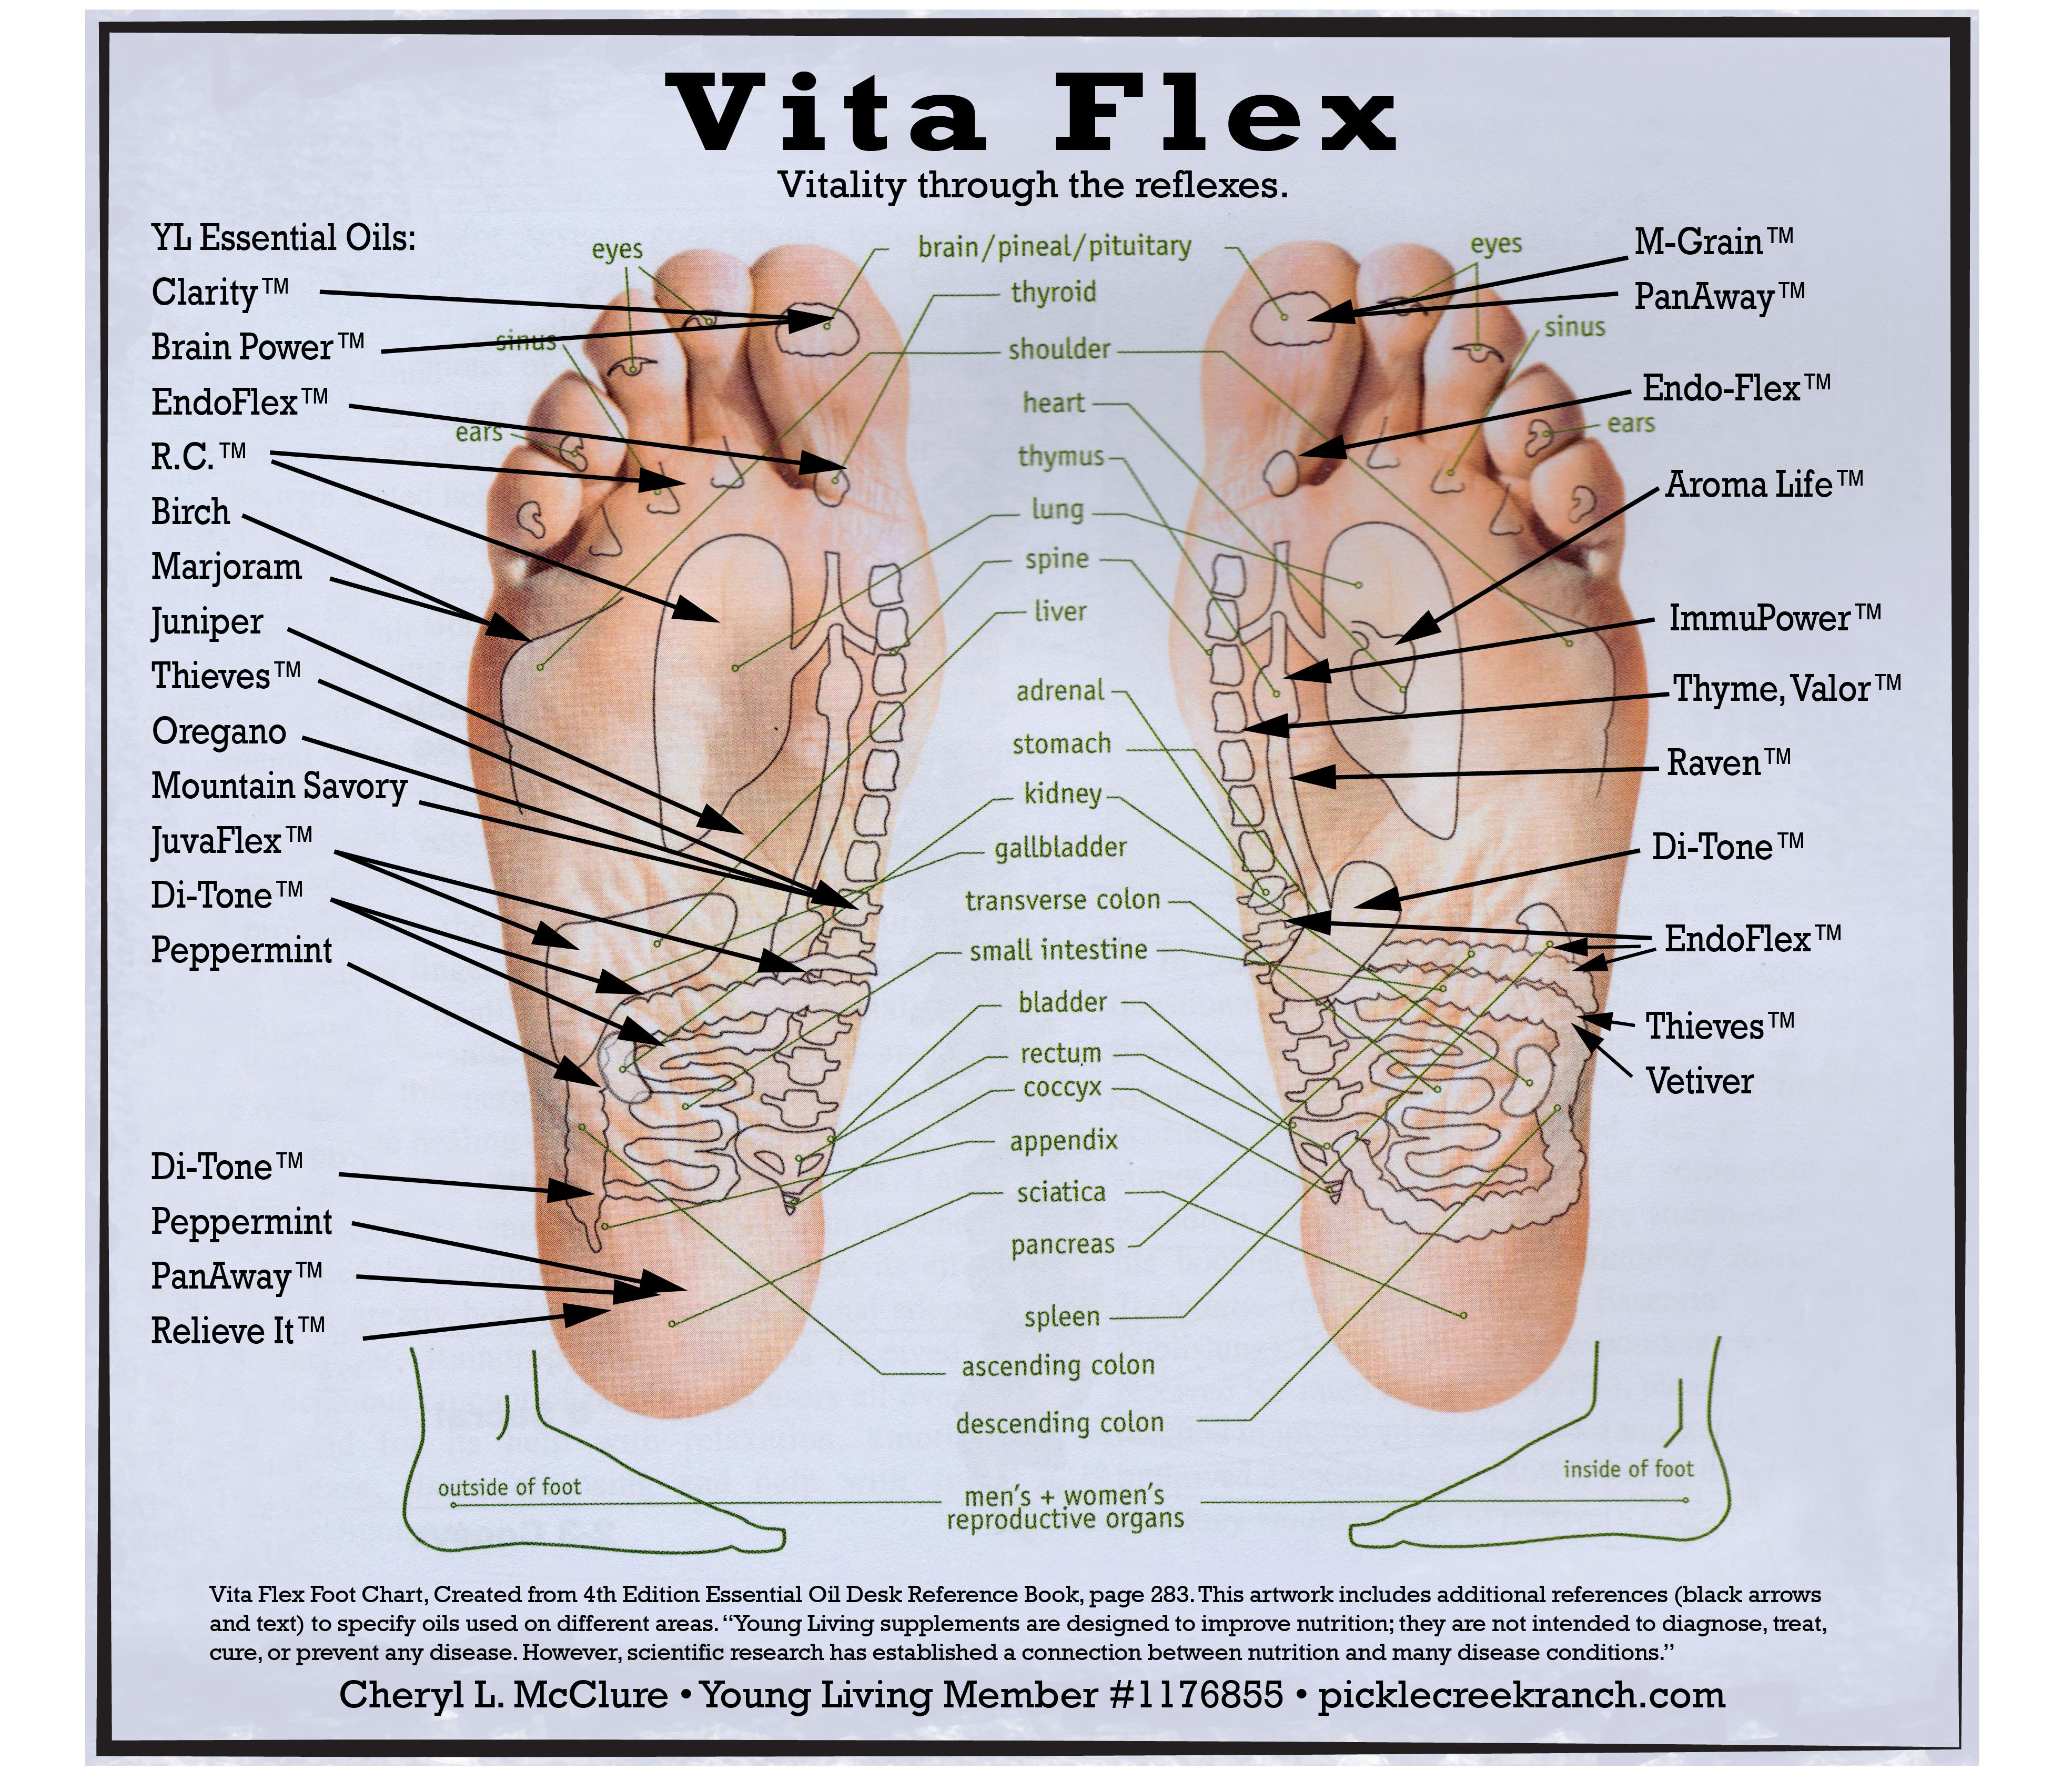 Vita flex foot chart using young living therapeutic grade essential oils don   forget you can put the on your feet also rh pinterest